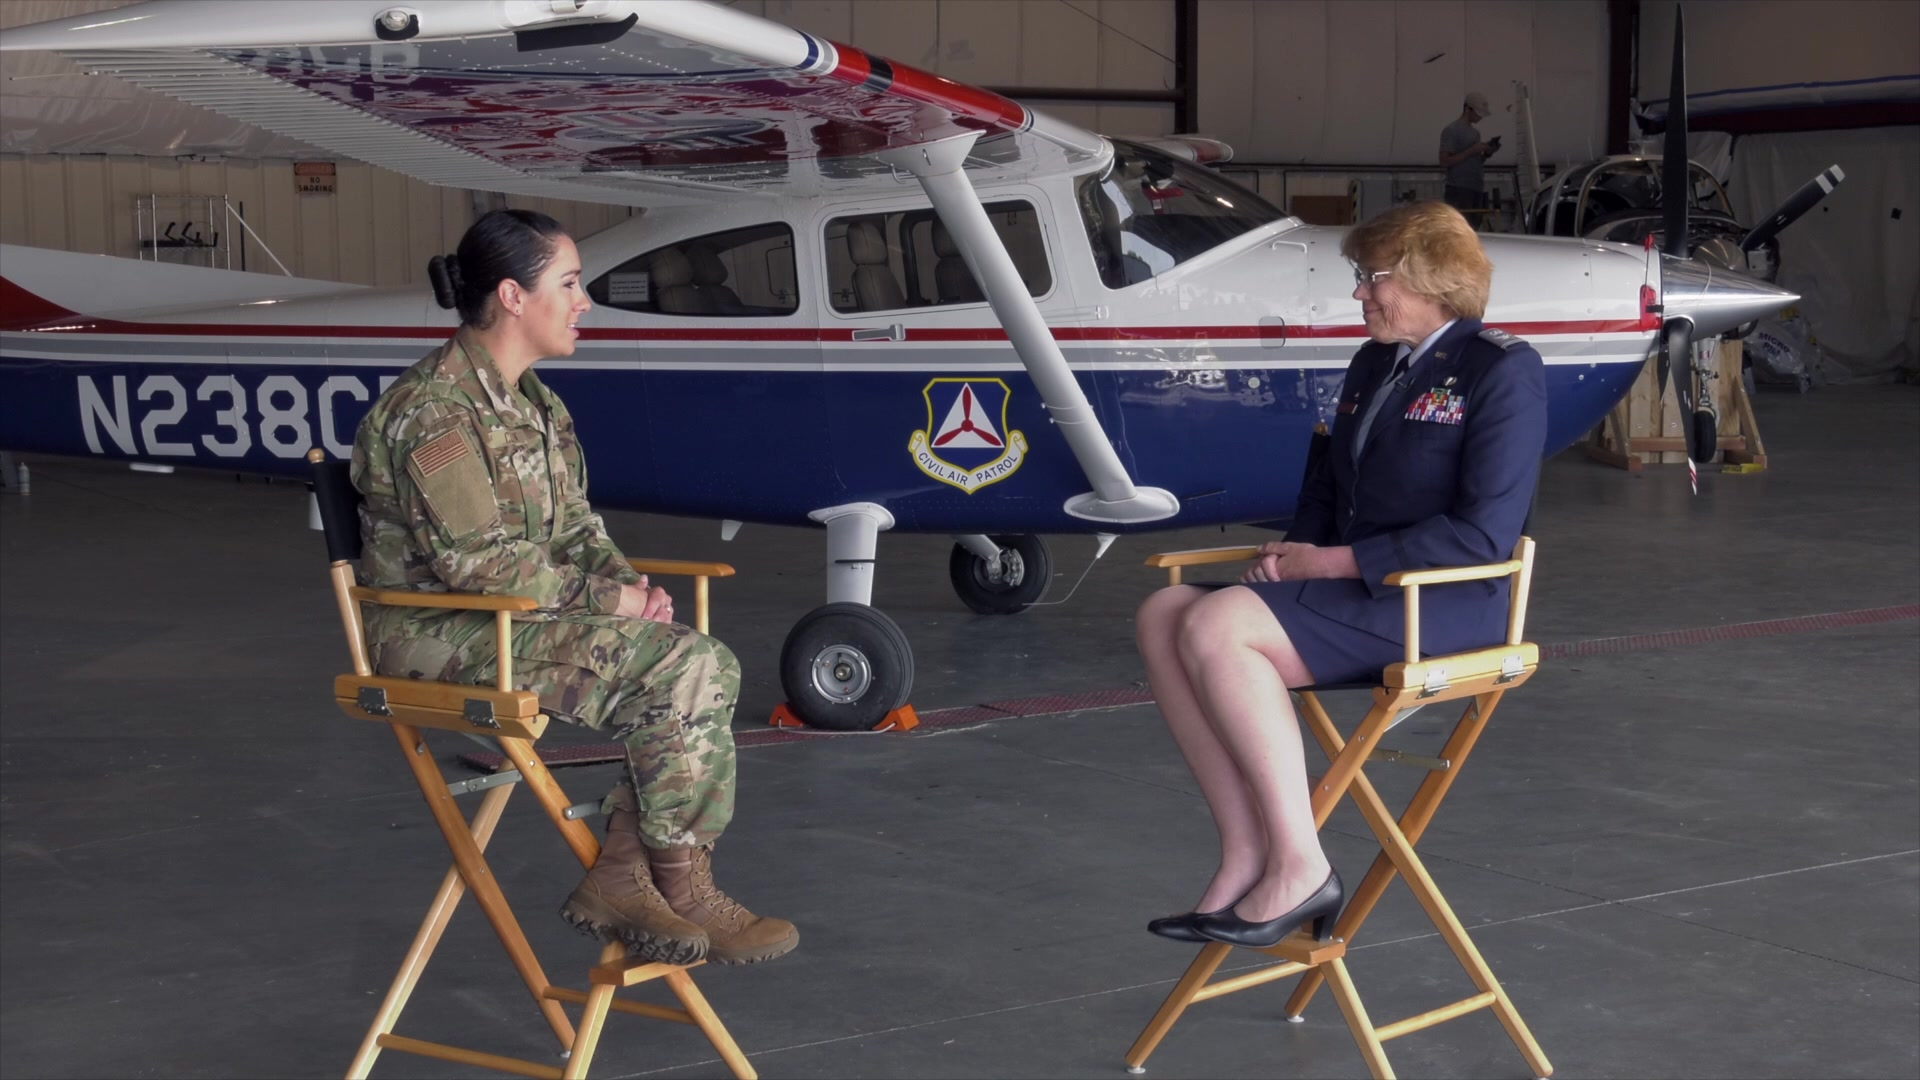 On this episode of Between 2 Frames, the new commander of Vermont's Civil Air Patrol, Col. Ann Brechbuhl, talks about the Civil Air Patrol and their connection with the Vermont National Guard.